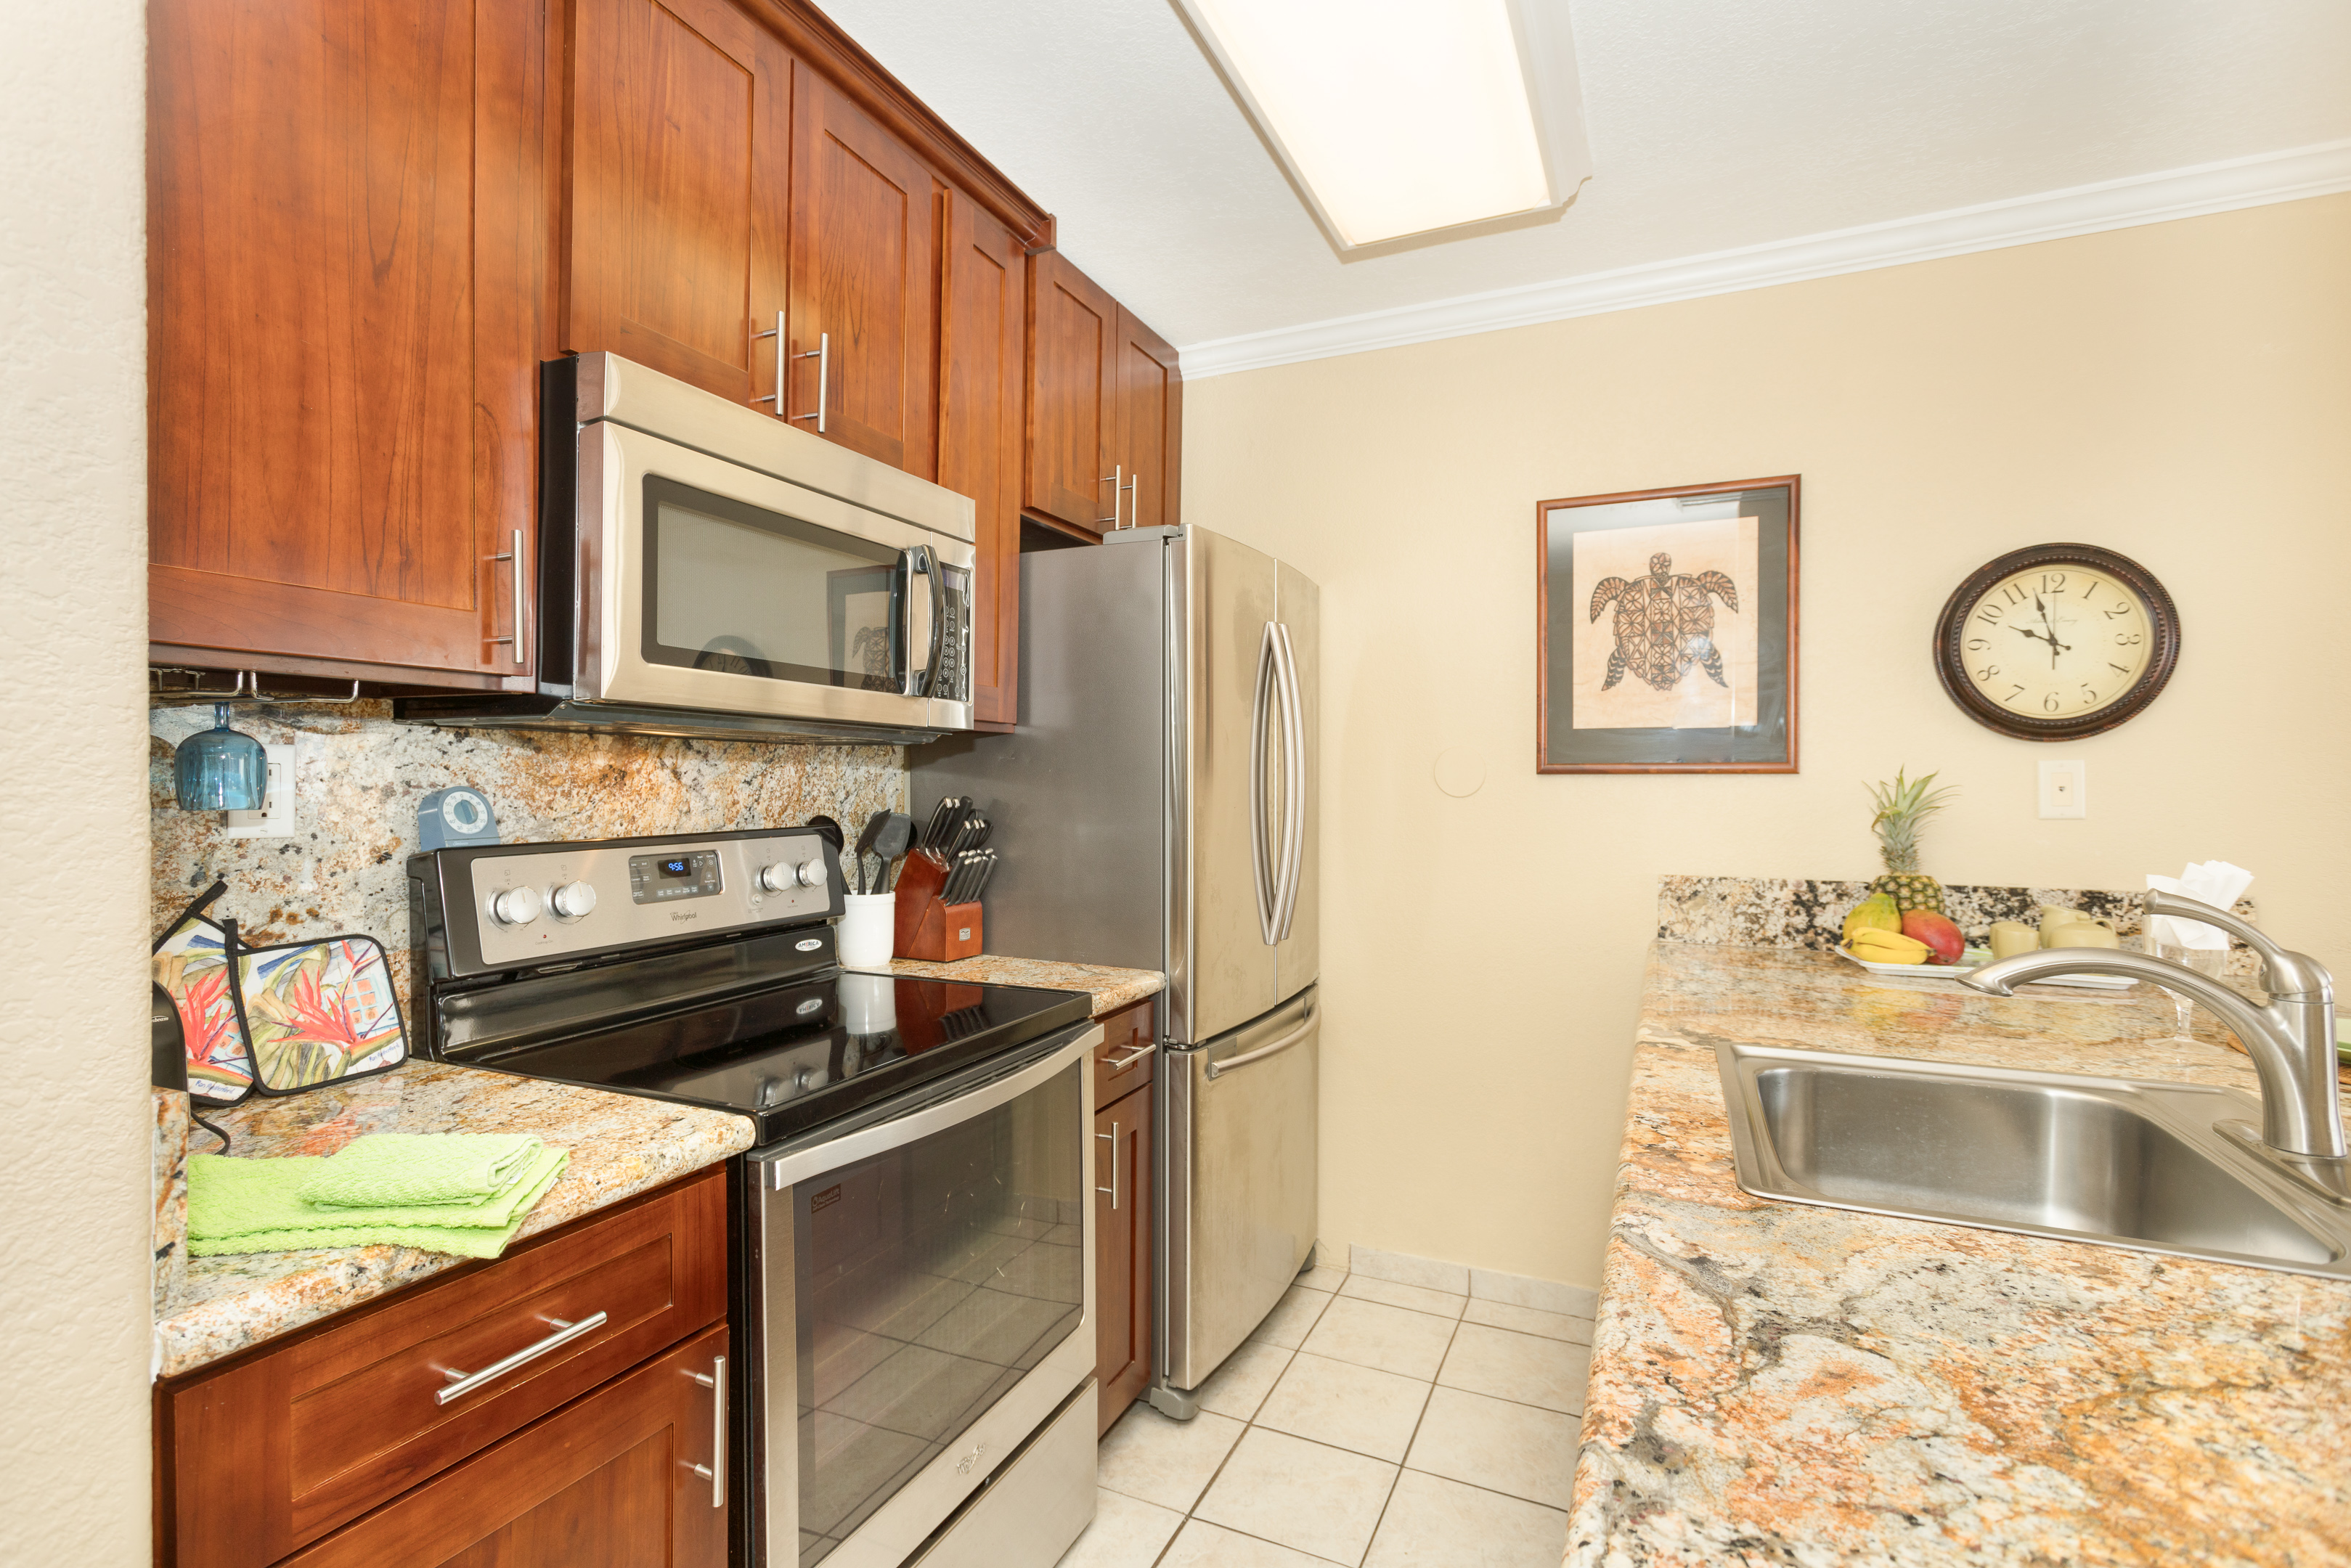 Remodeled full sized kitchen with amazing view for the chef.